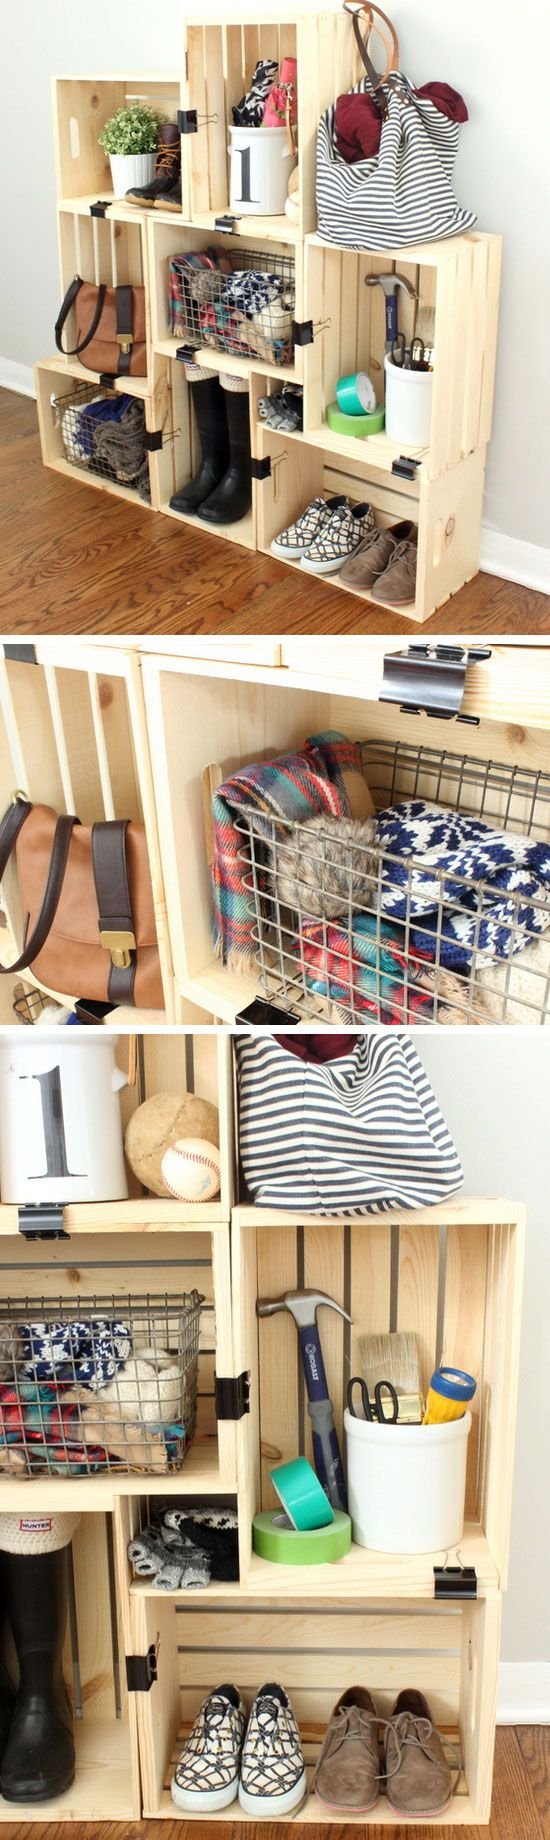 Best 25+ Small apartment organization ideas on Pinterest | Storage ...